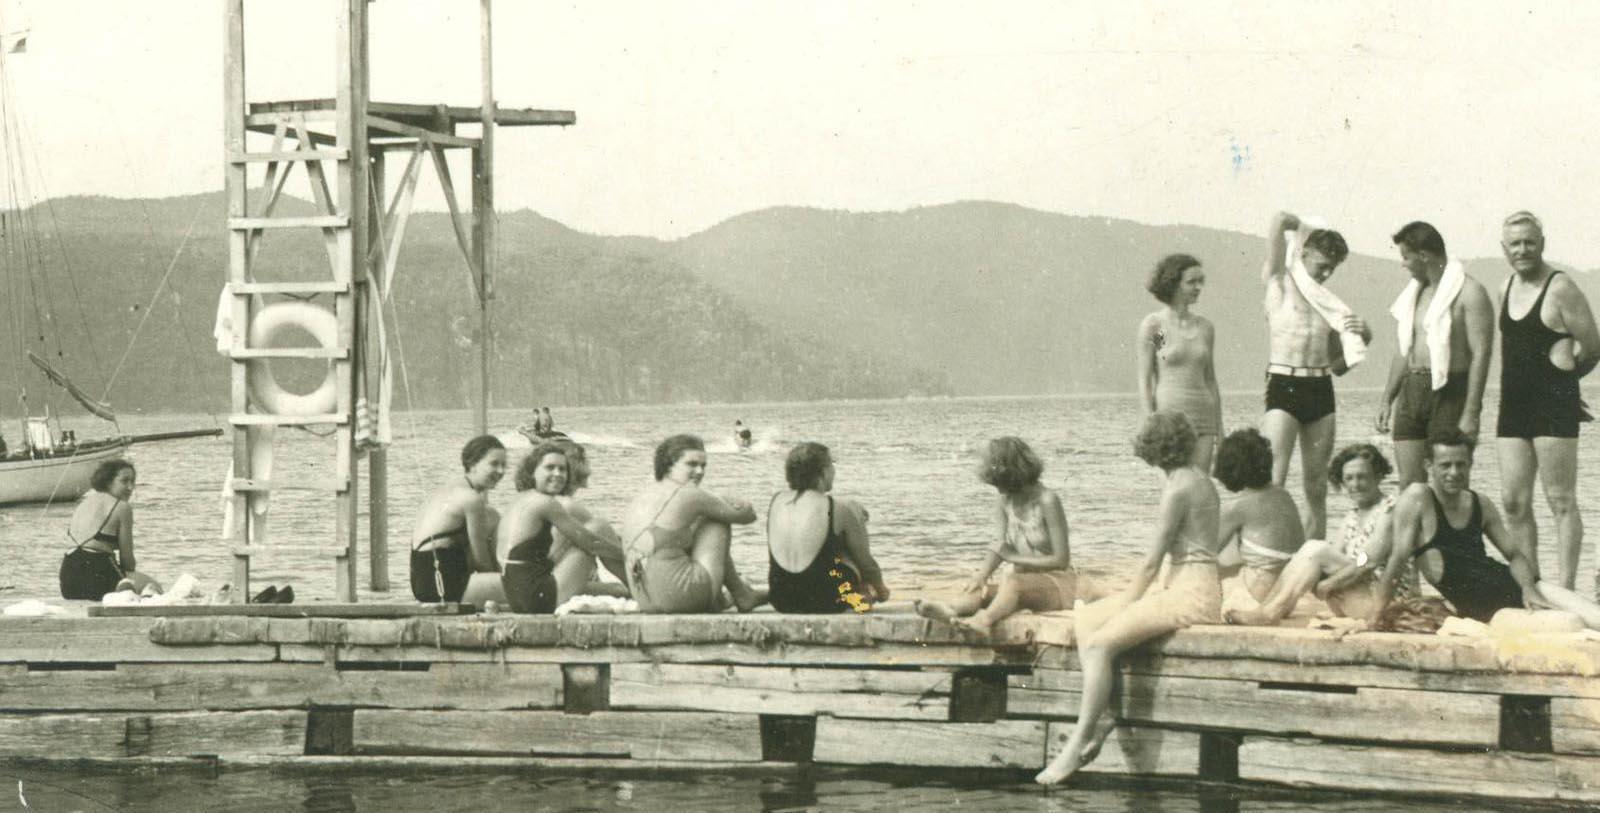 Historic image of people swimming at Basin Harbor, 1886, Member of Historic Hotels of America, in Vergennes, Vermont, Discover